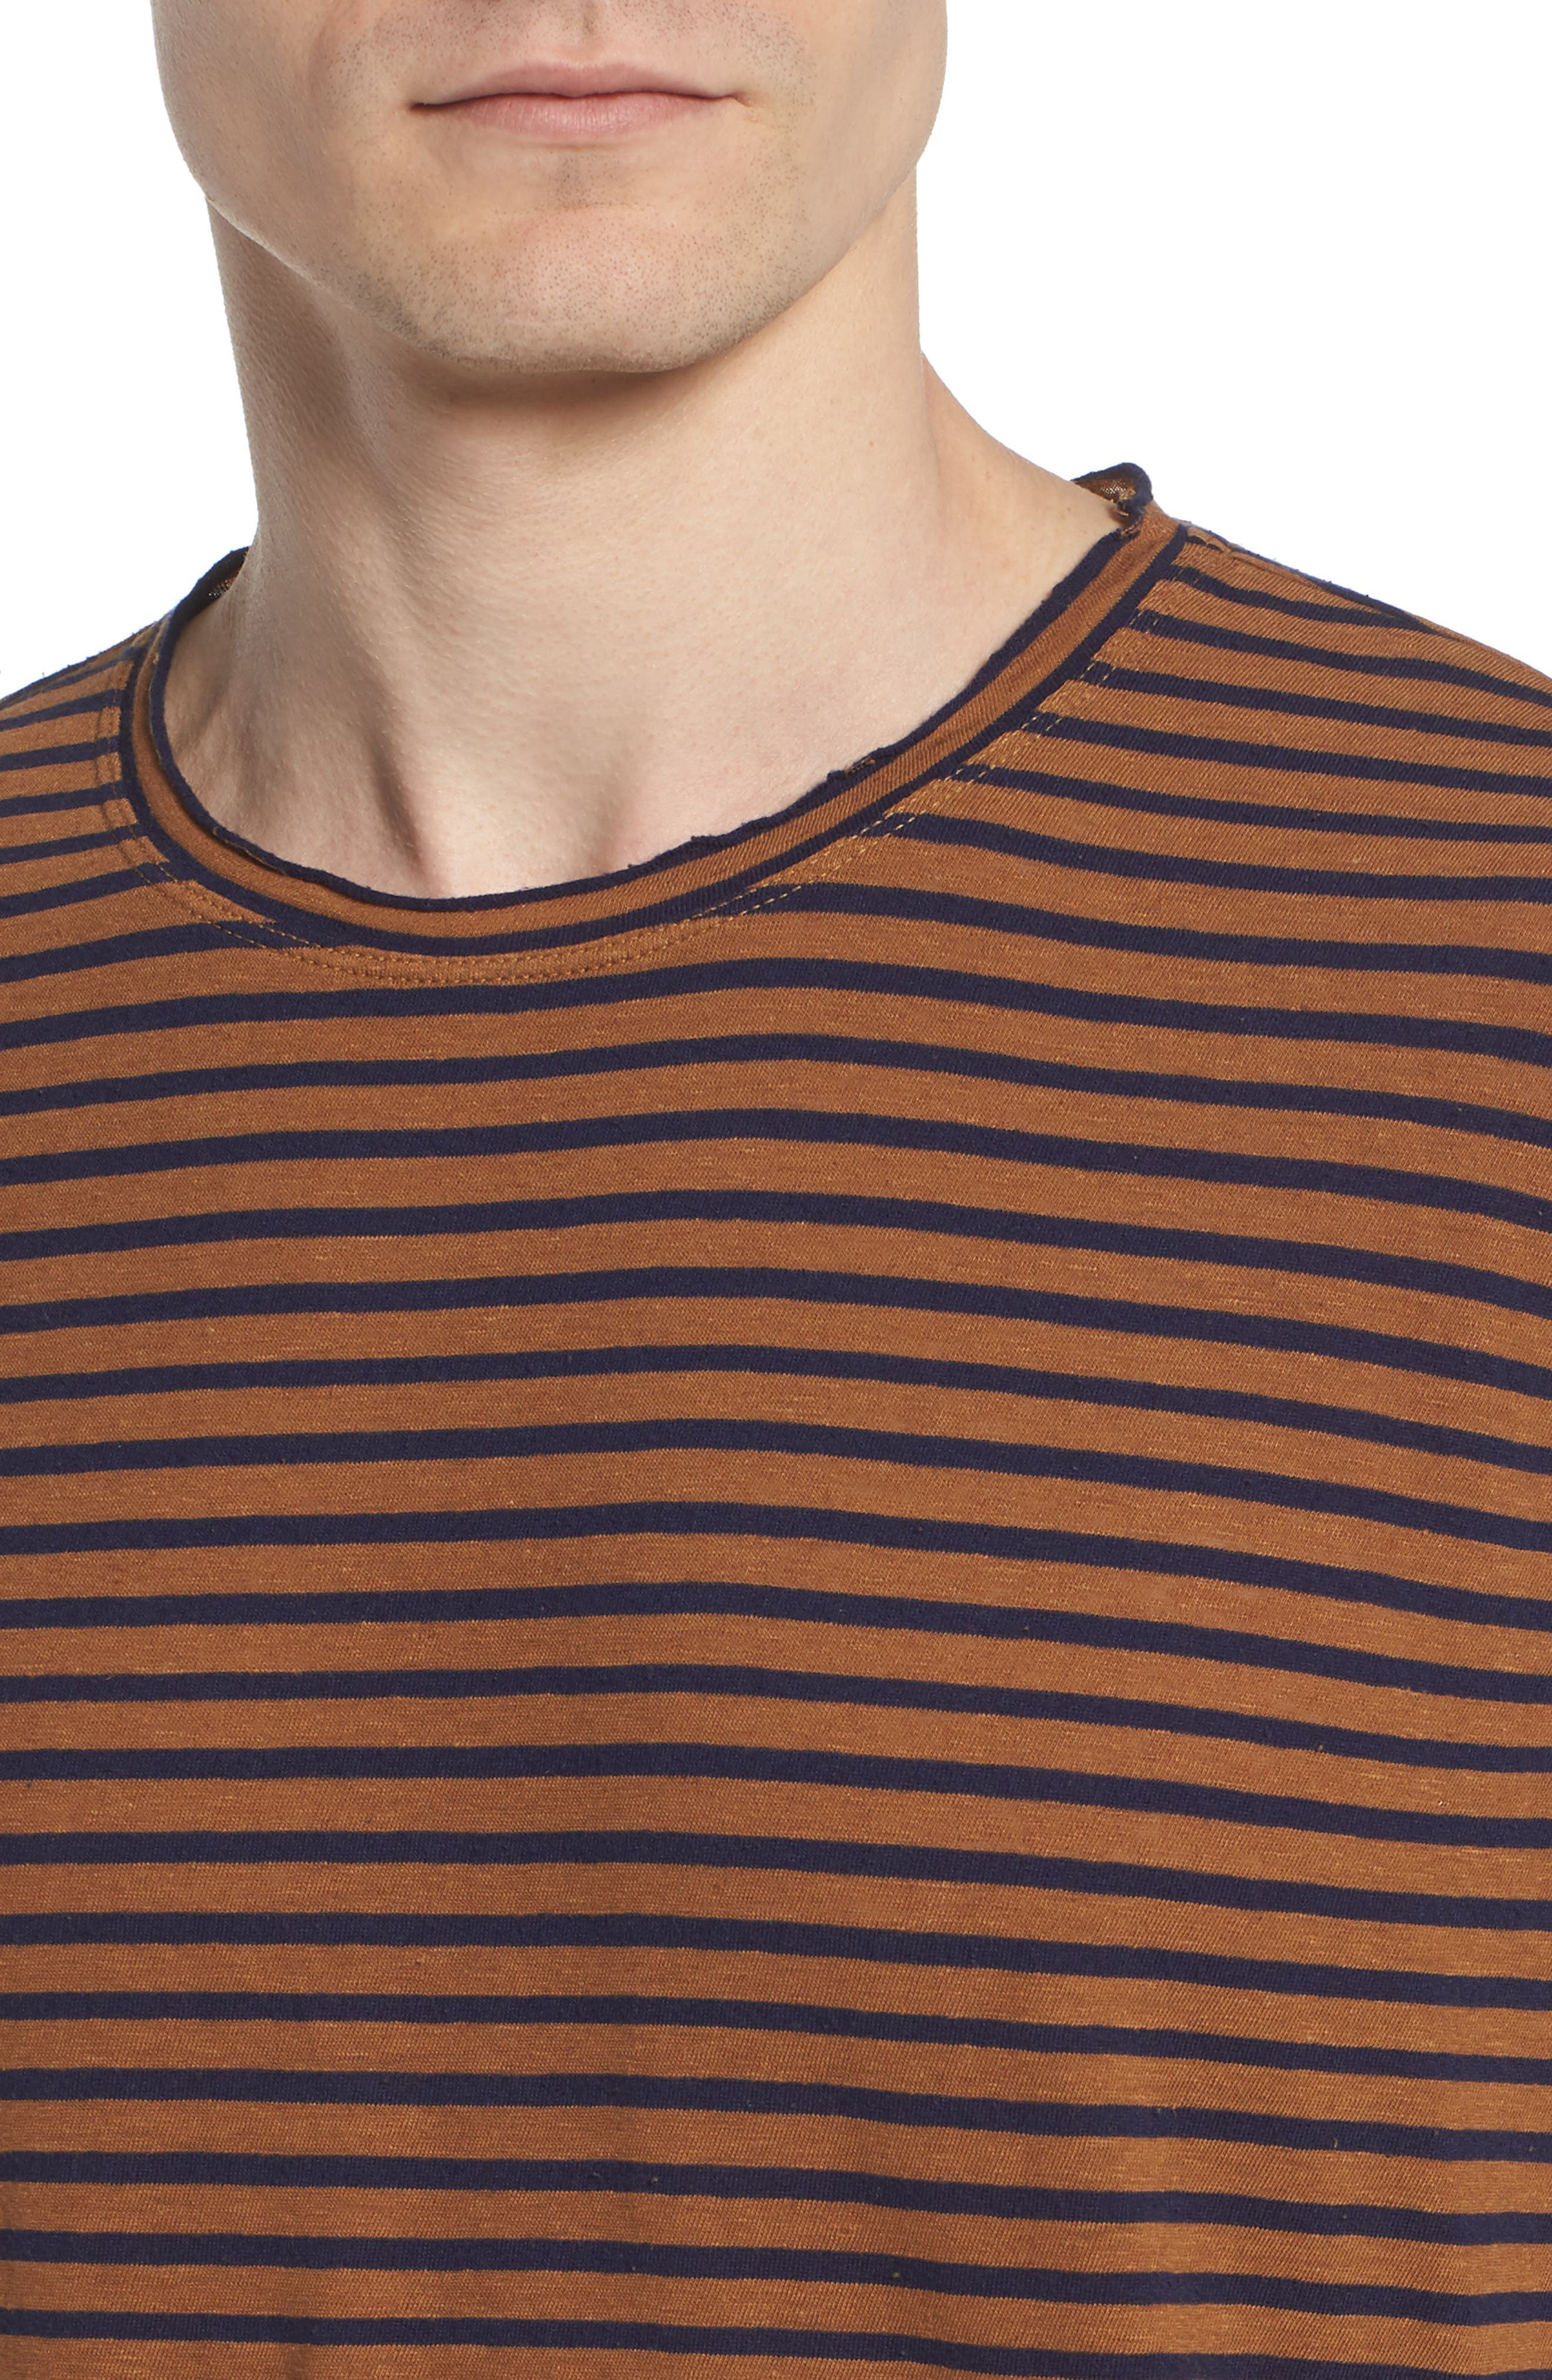 Theo Striped Cotton & Linen T-Shirt,                             Alternate thumbnail 4, color,                             BRONZE CLAY/ NAVY